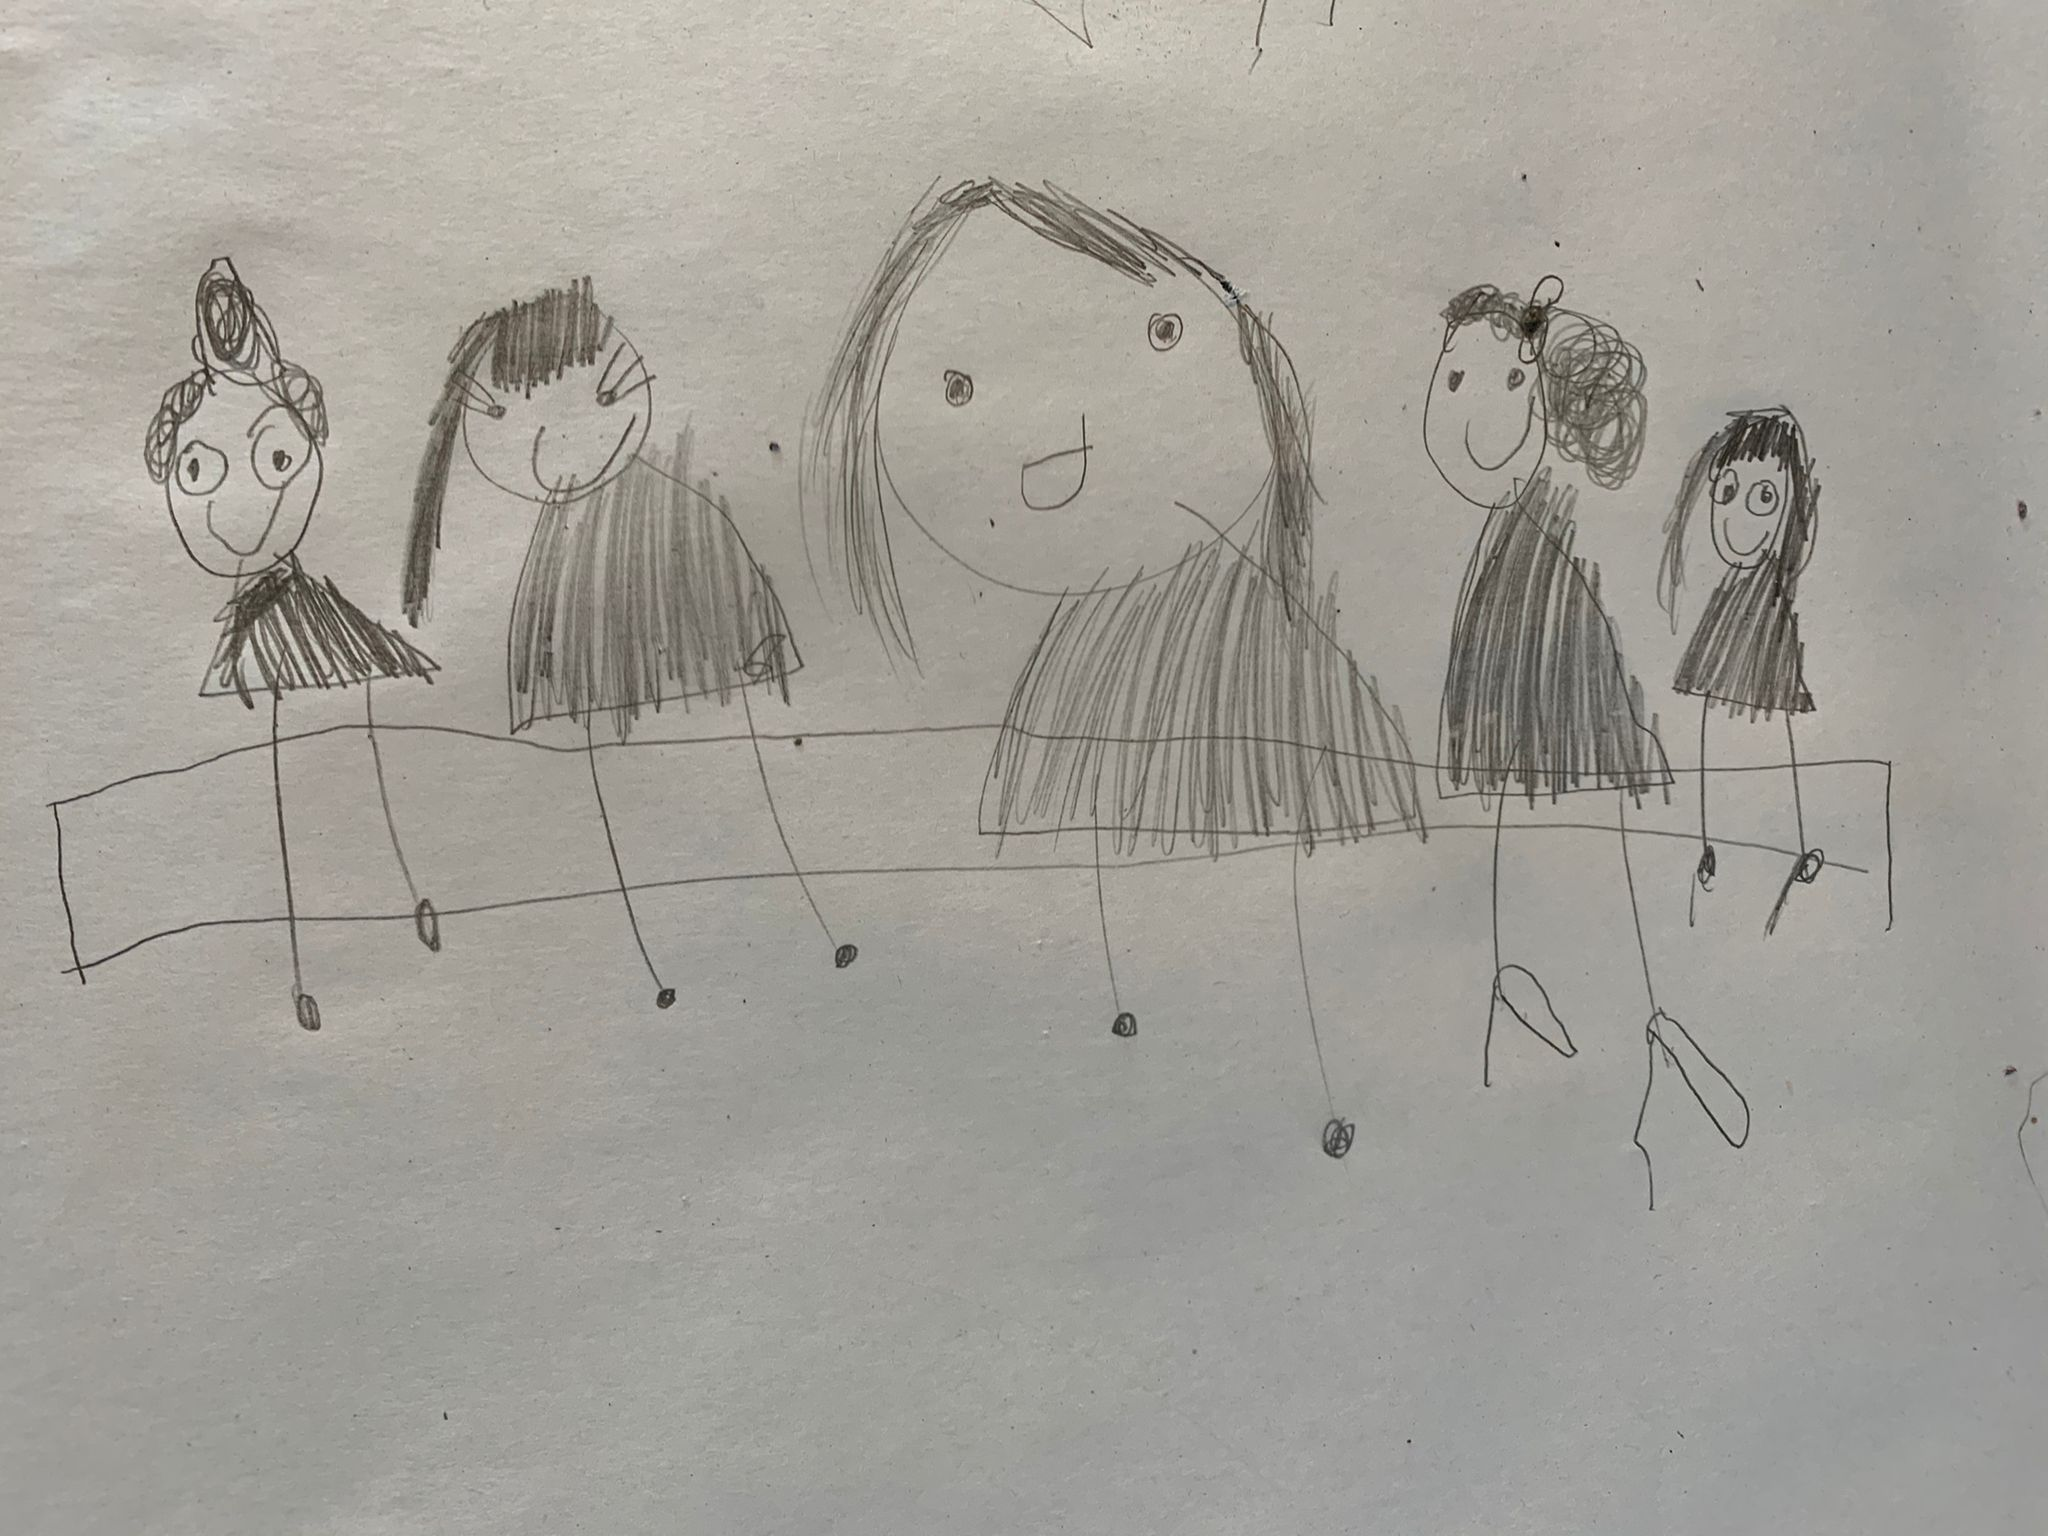 a child's pencil drawing of five people